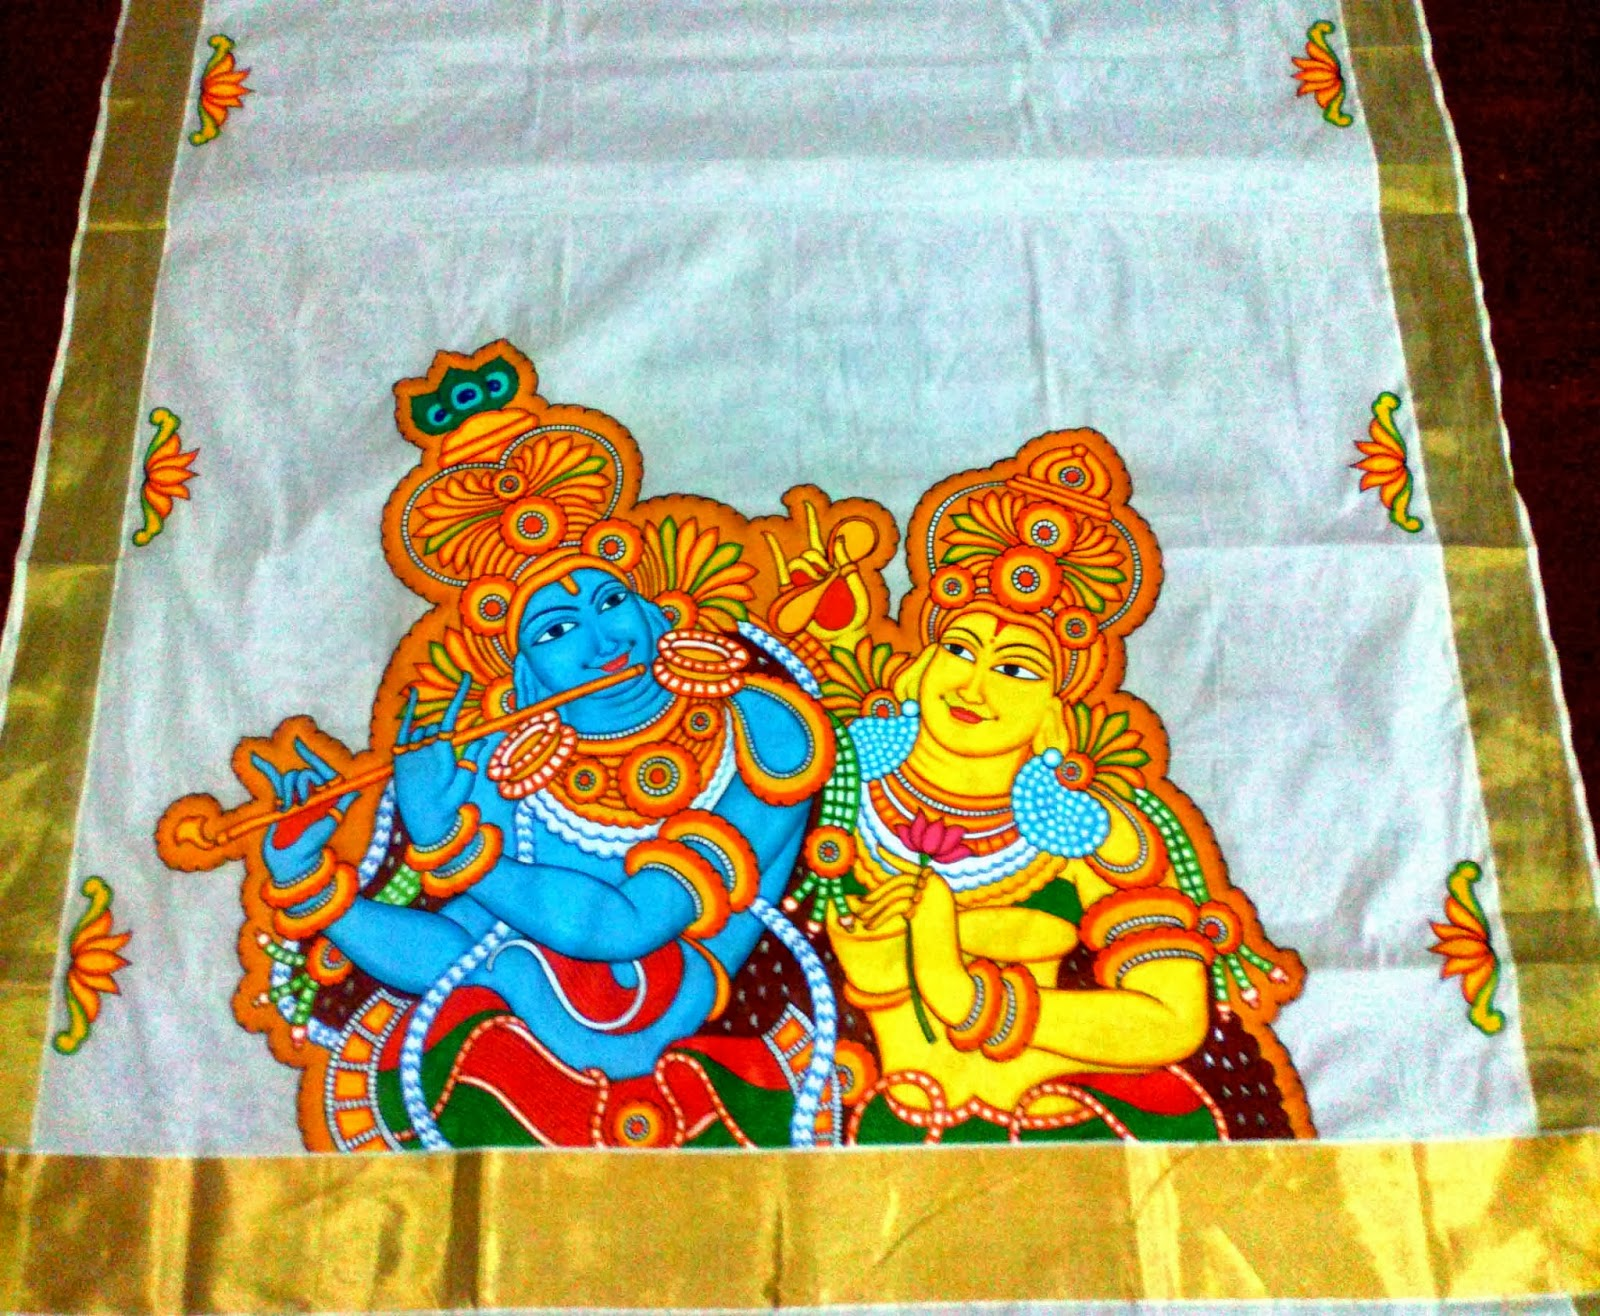 Varnachithra sarees mural for Art mural painting